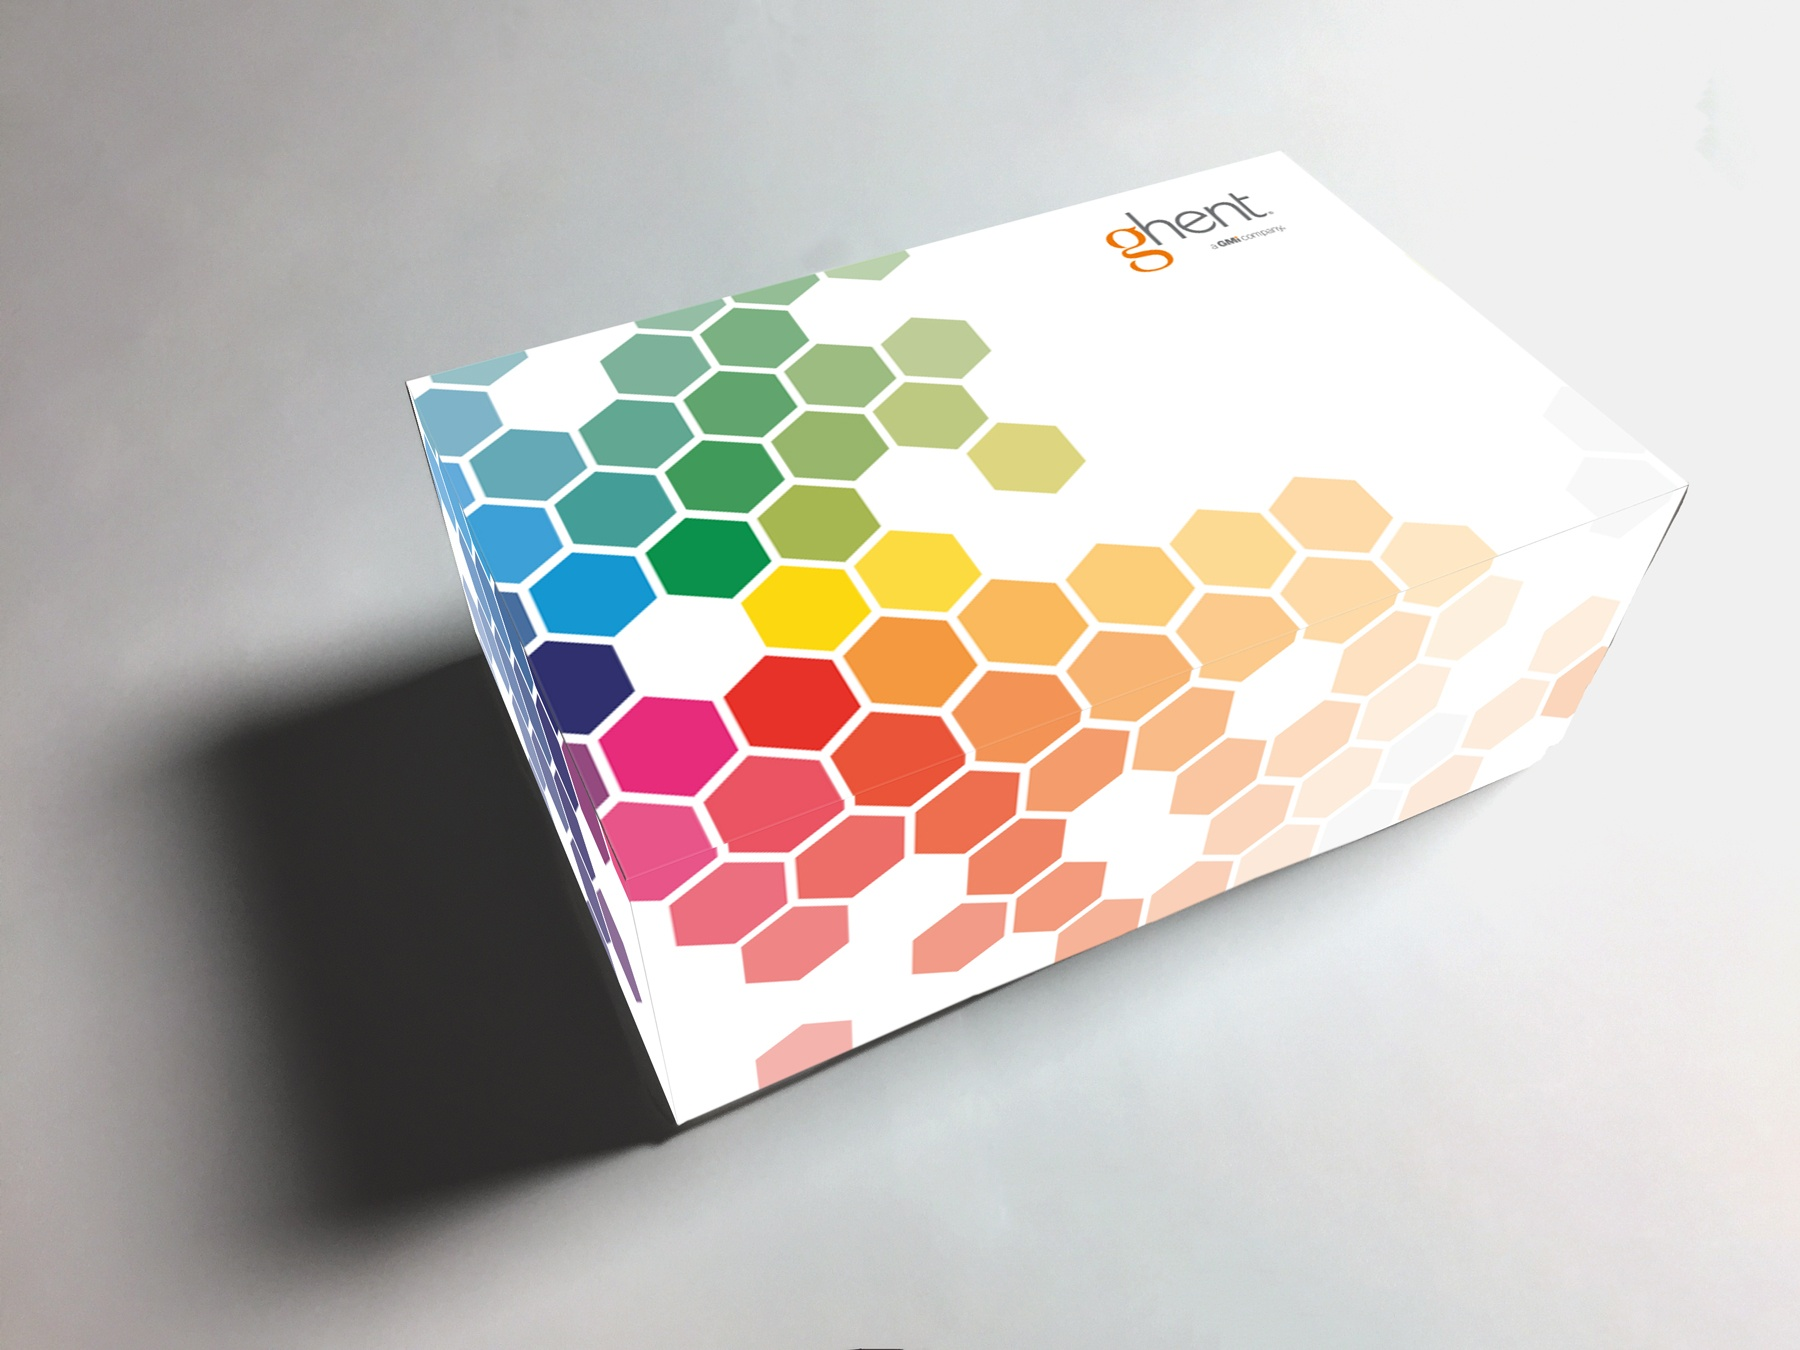 A photo of the Hex product box design